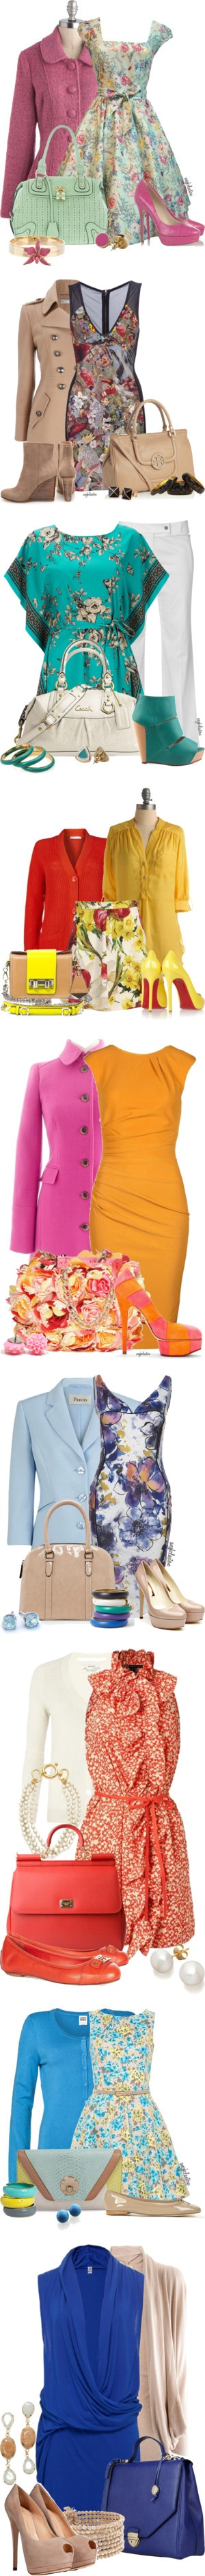 """""""Style by Sugar Sweet Boutique"""" by sugarsweetboutiques on Polyvore"""